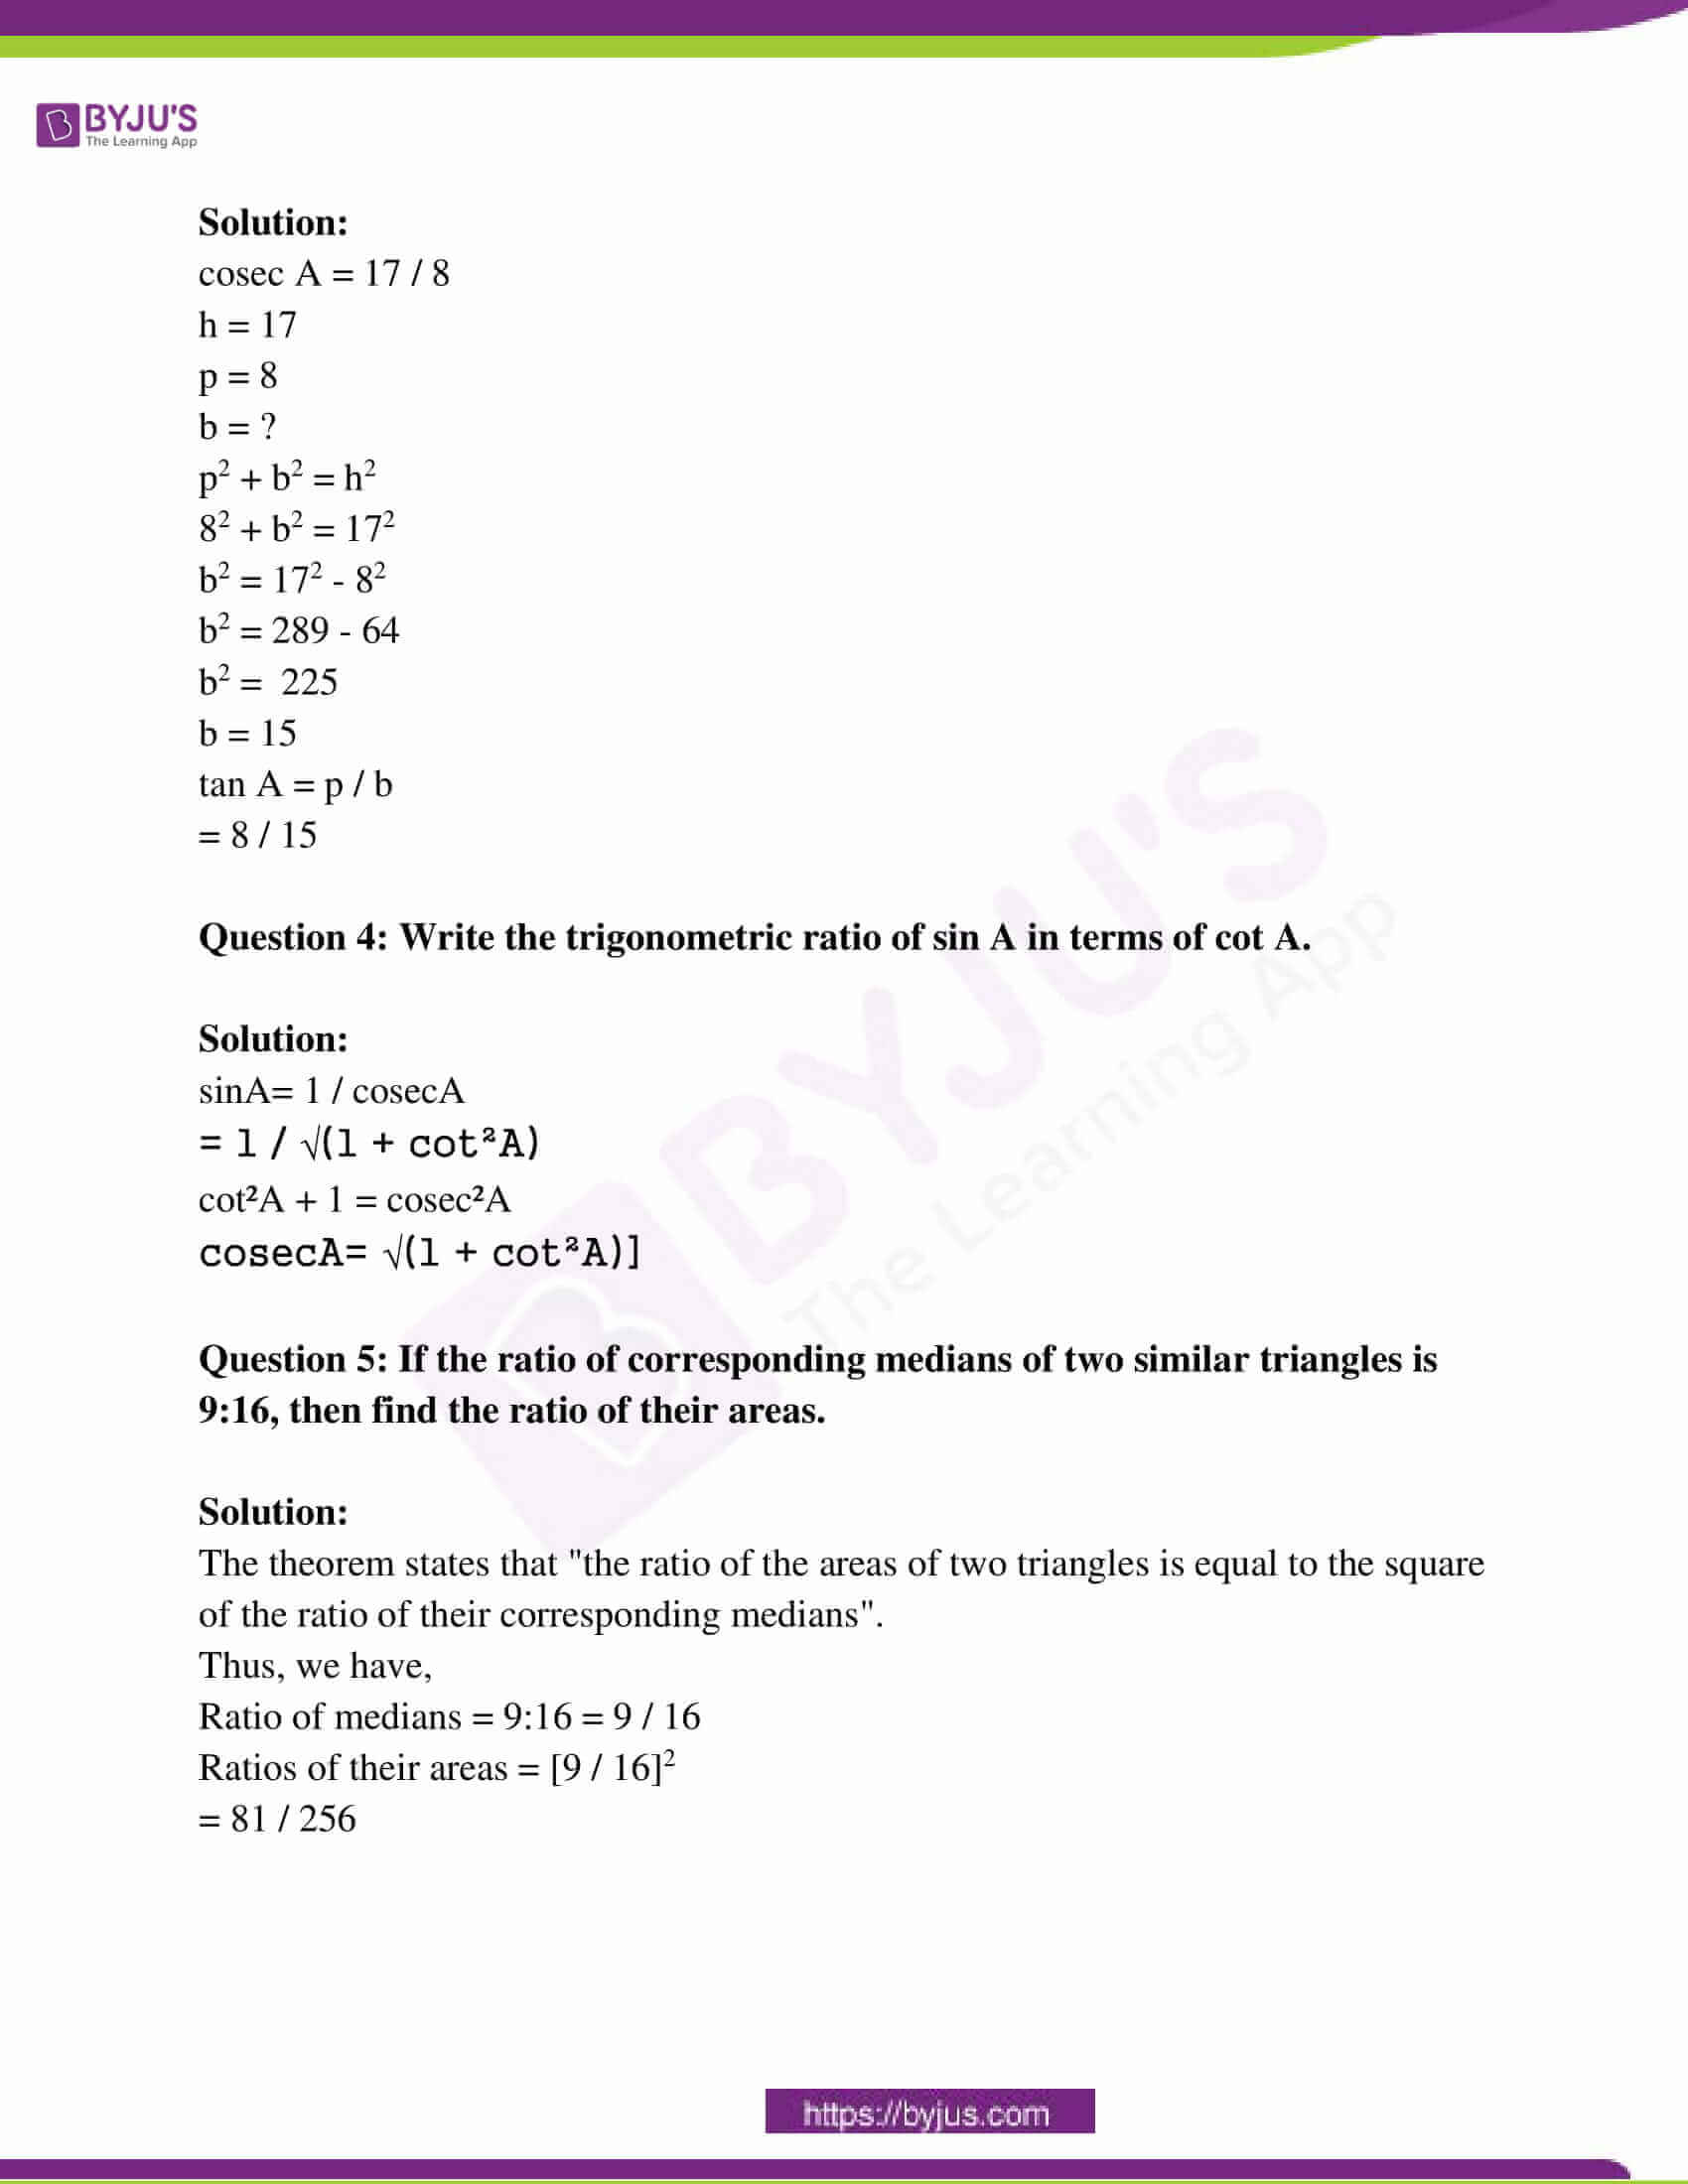 rajasthan board class 10 examination question paper sol march 2017 02